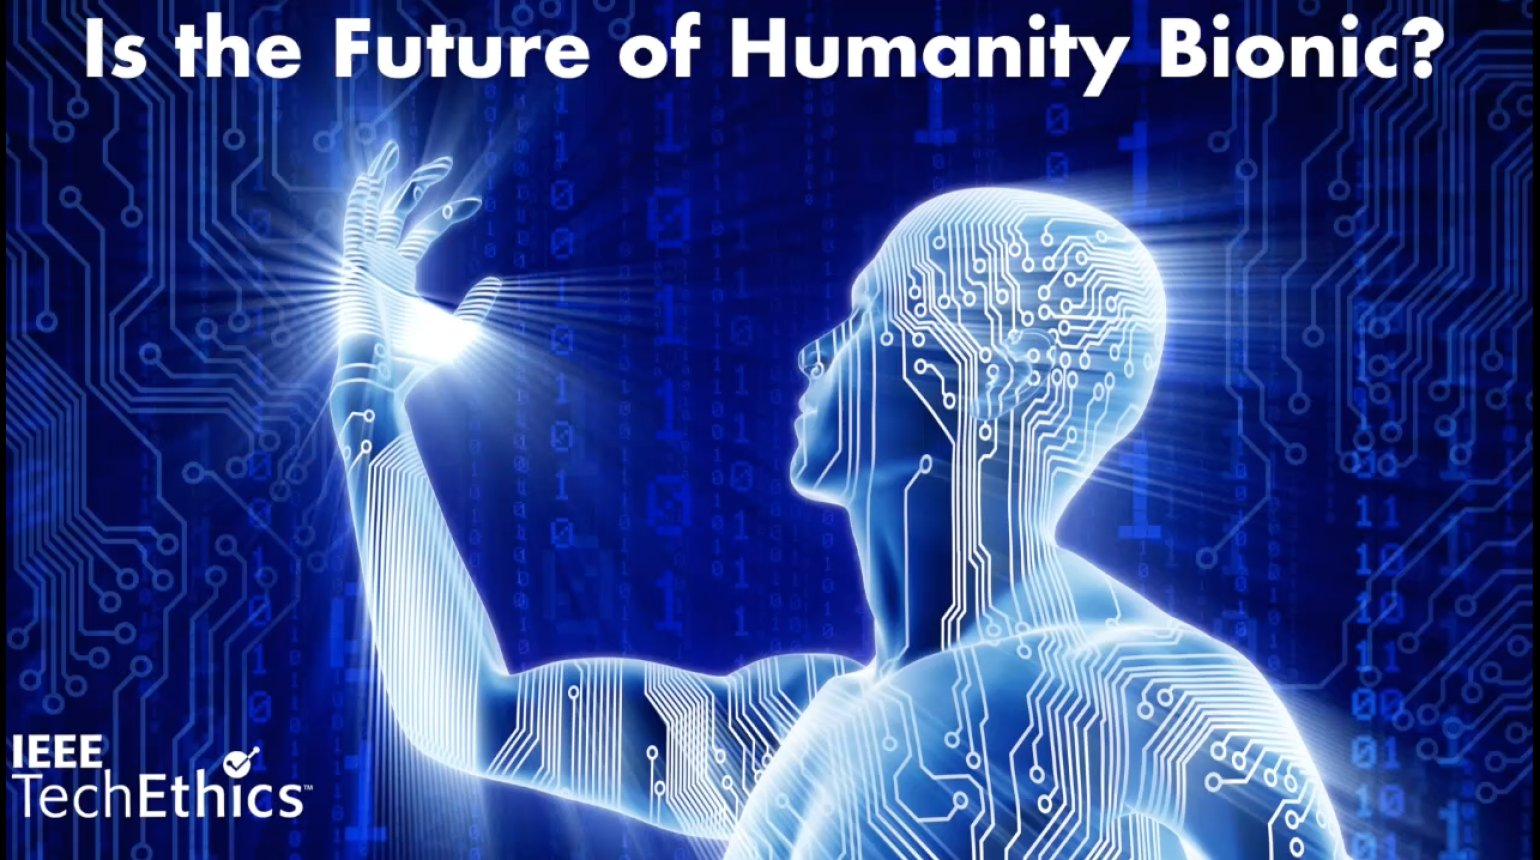 Is the Future of Humanity Bionic? - IEEE TechEthics Virtual Panel